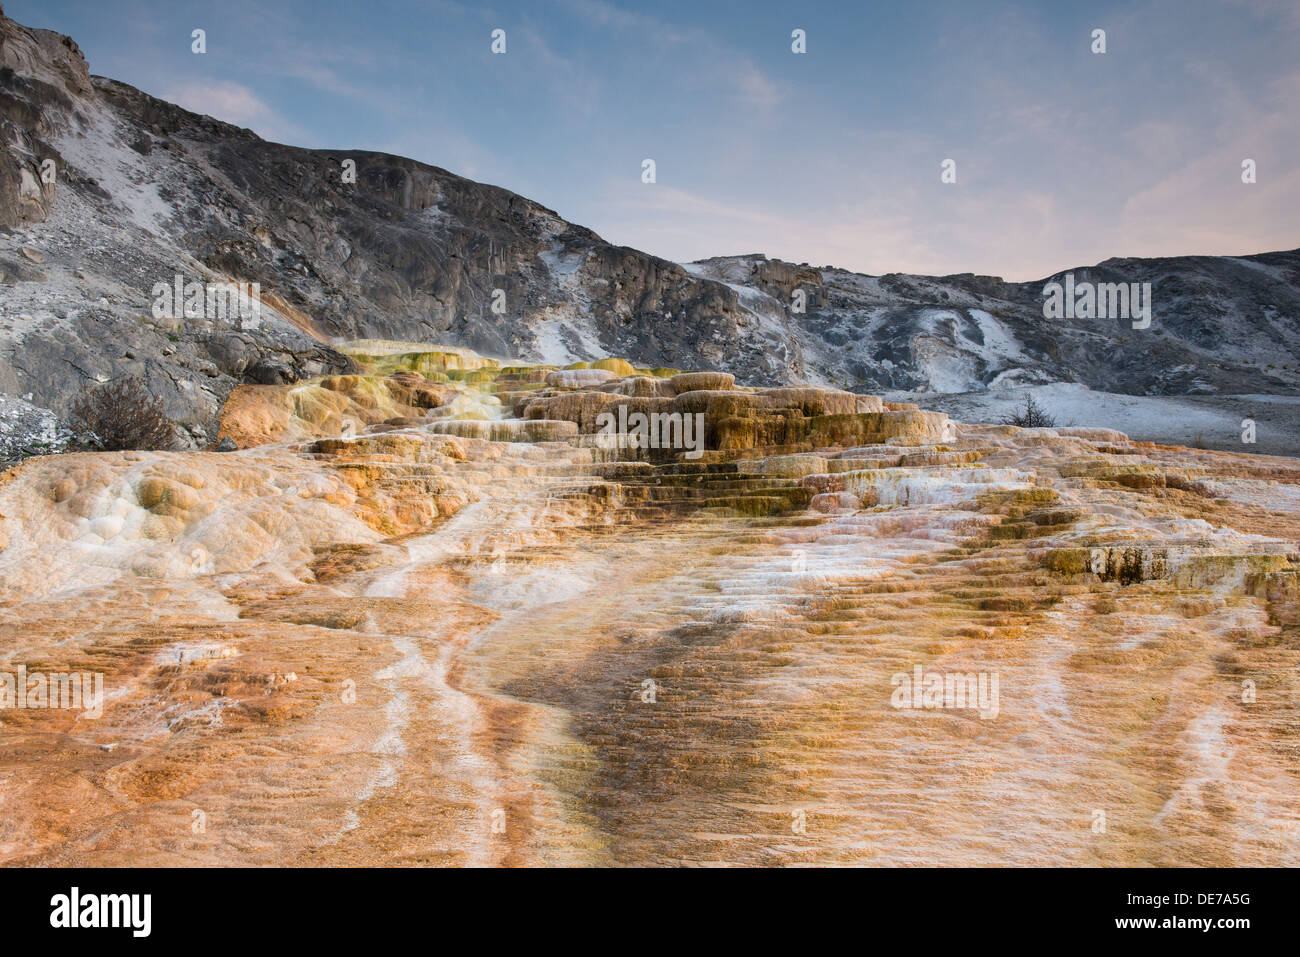 Photograph of Cleopatra Terrace shot with a wide angle lens. Yellowstone National Park. - Stock Image